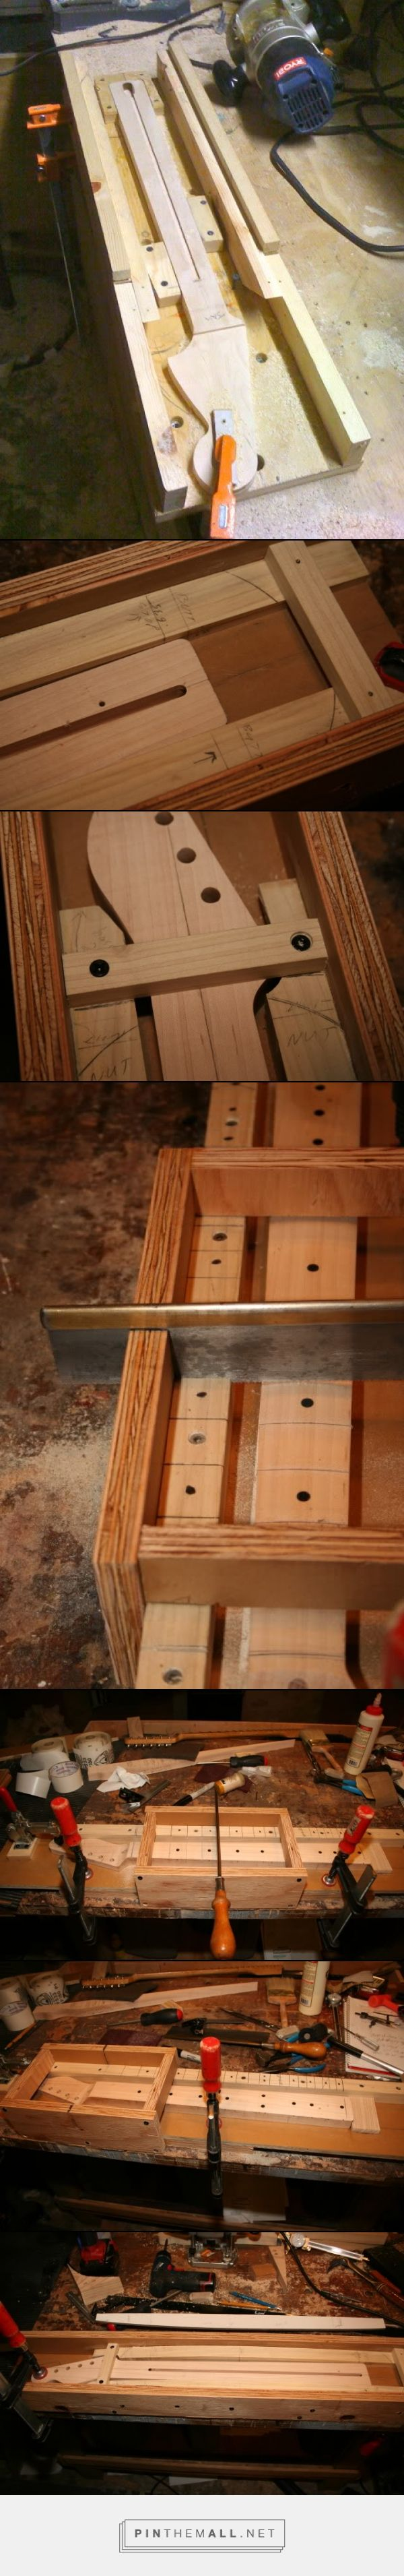 DIY tools & jigs - Telecaster Guitar Forum Neck finishing jig - created via https://pinthemall.net